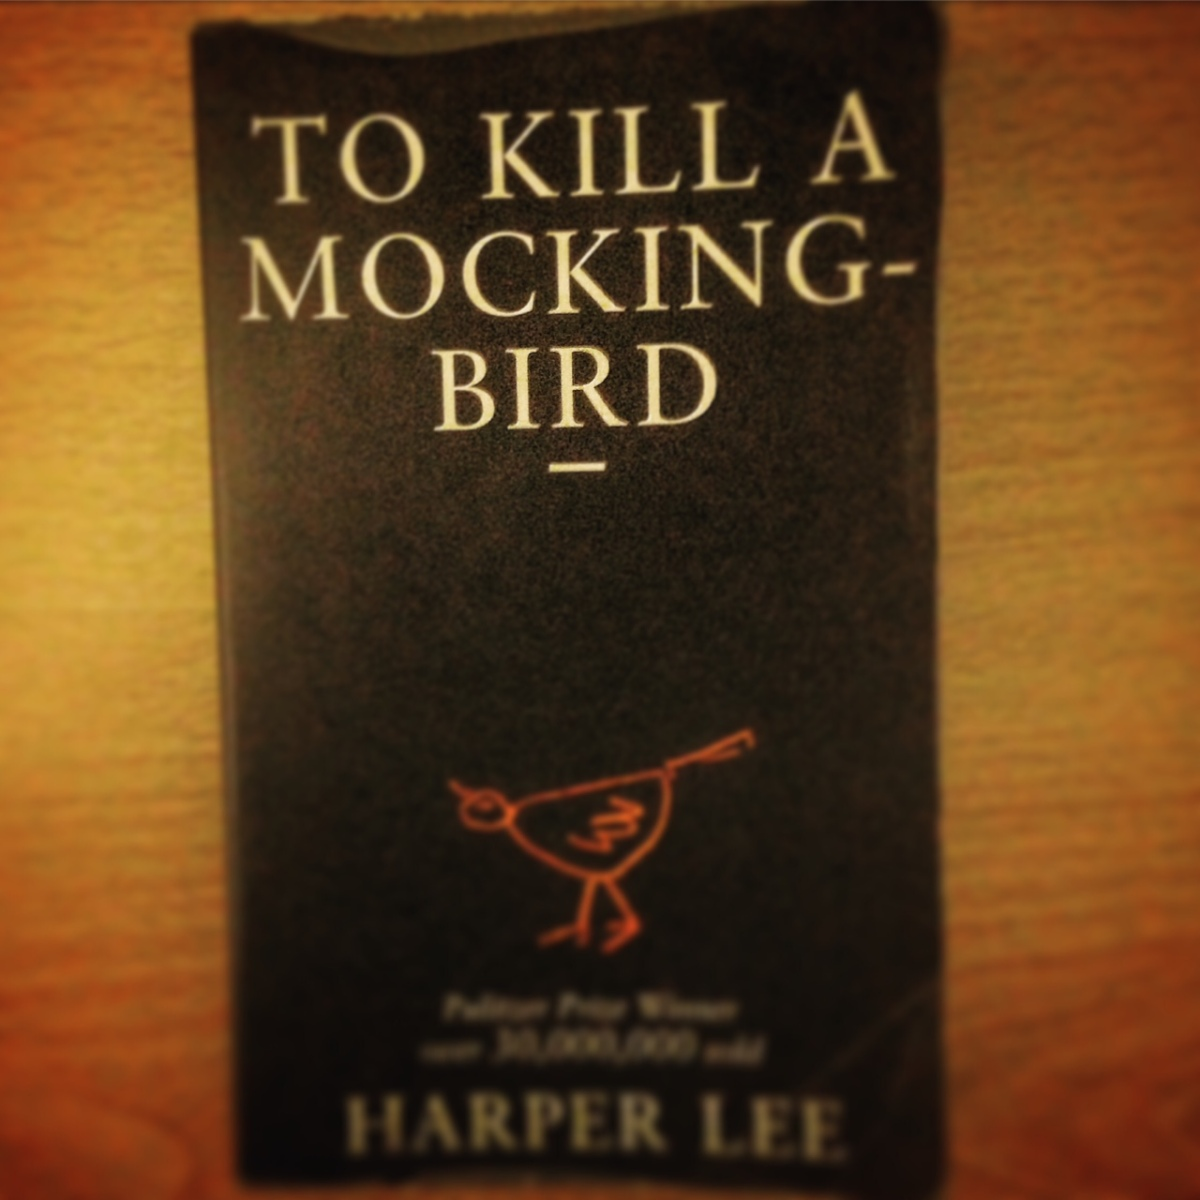 "kill mockingbird harper lee essay compassion novel ""to kill a mockingbird is about growing up, real courage and compassion - to kill a mockingbird introduction discuss "" harper lee's novel to kill a mockingbird represents many themes throughout."